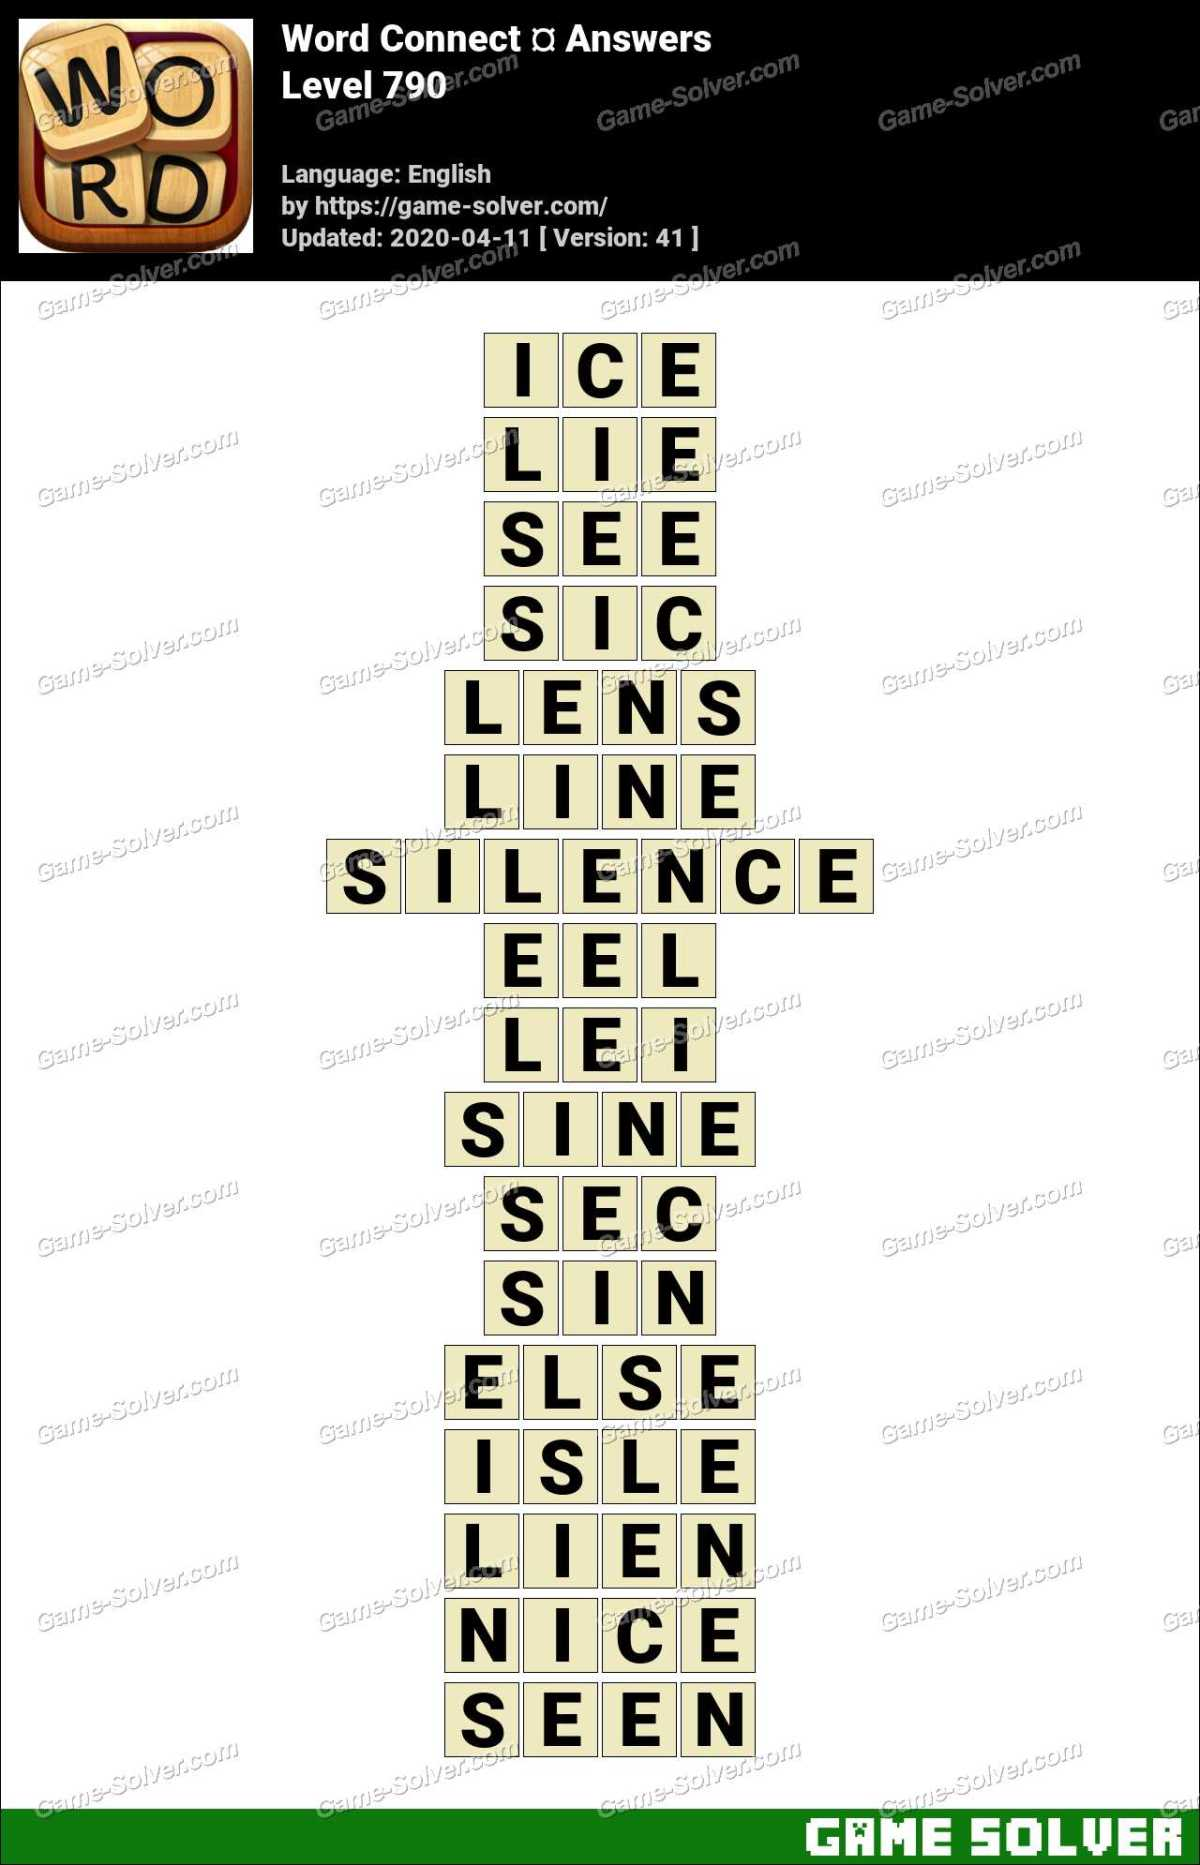 Word Connect Level 790 Answers